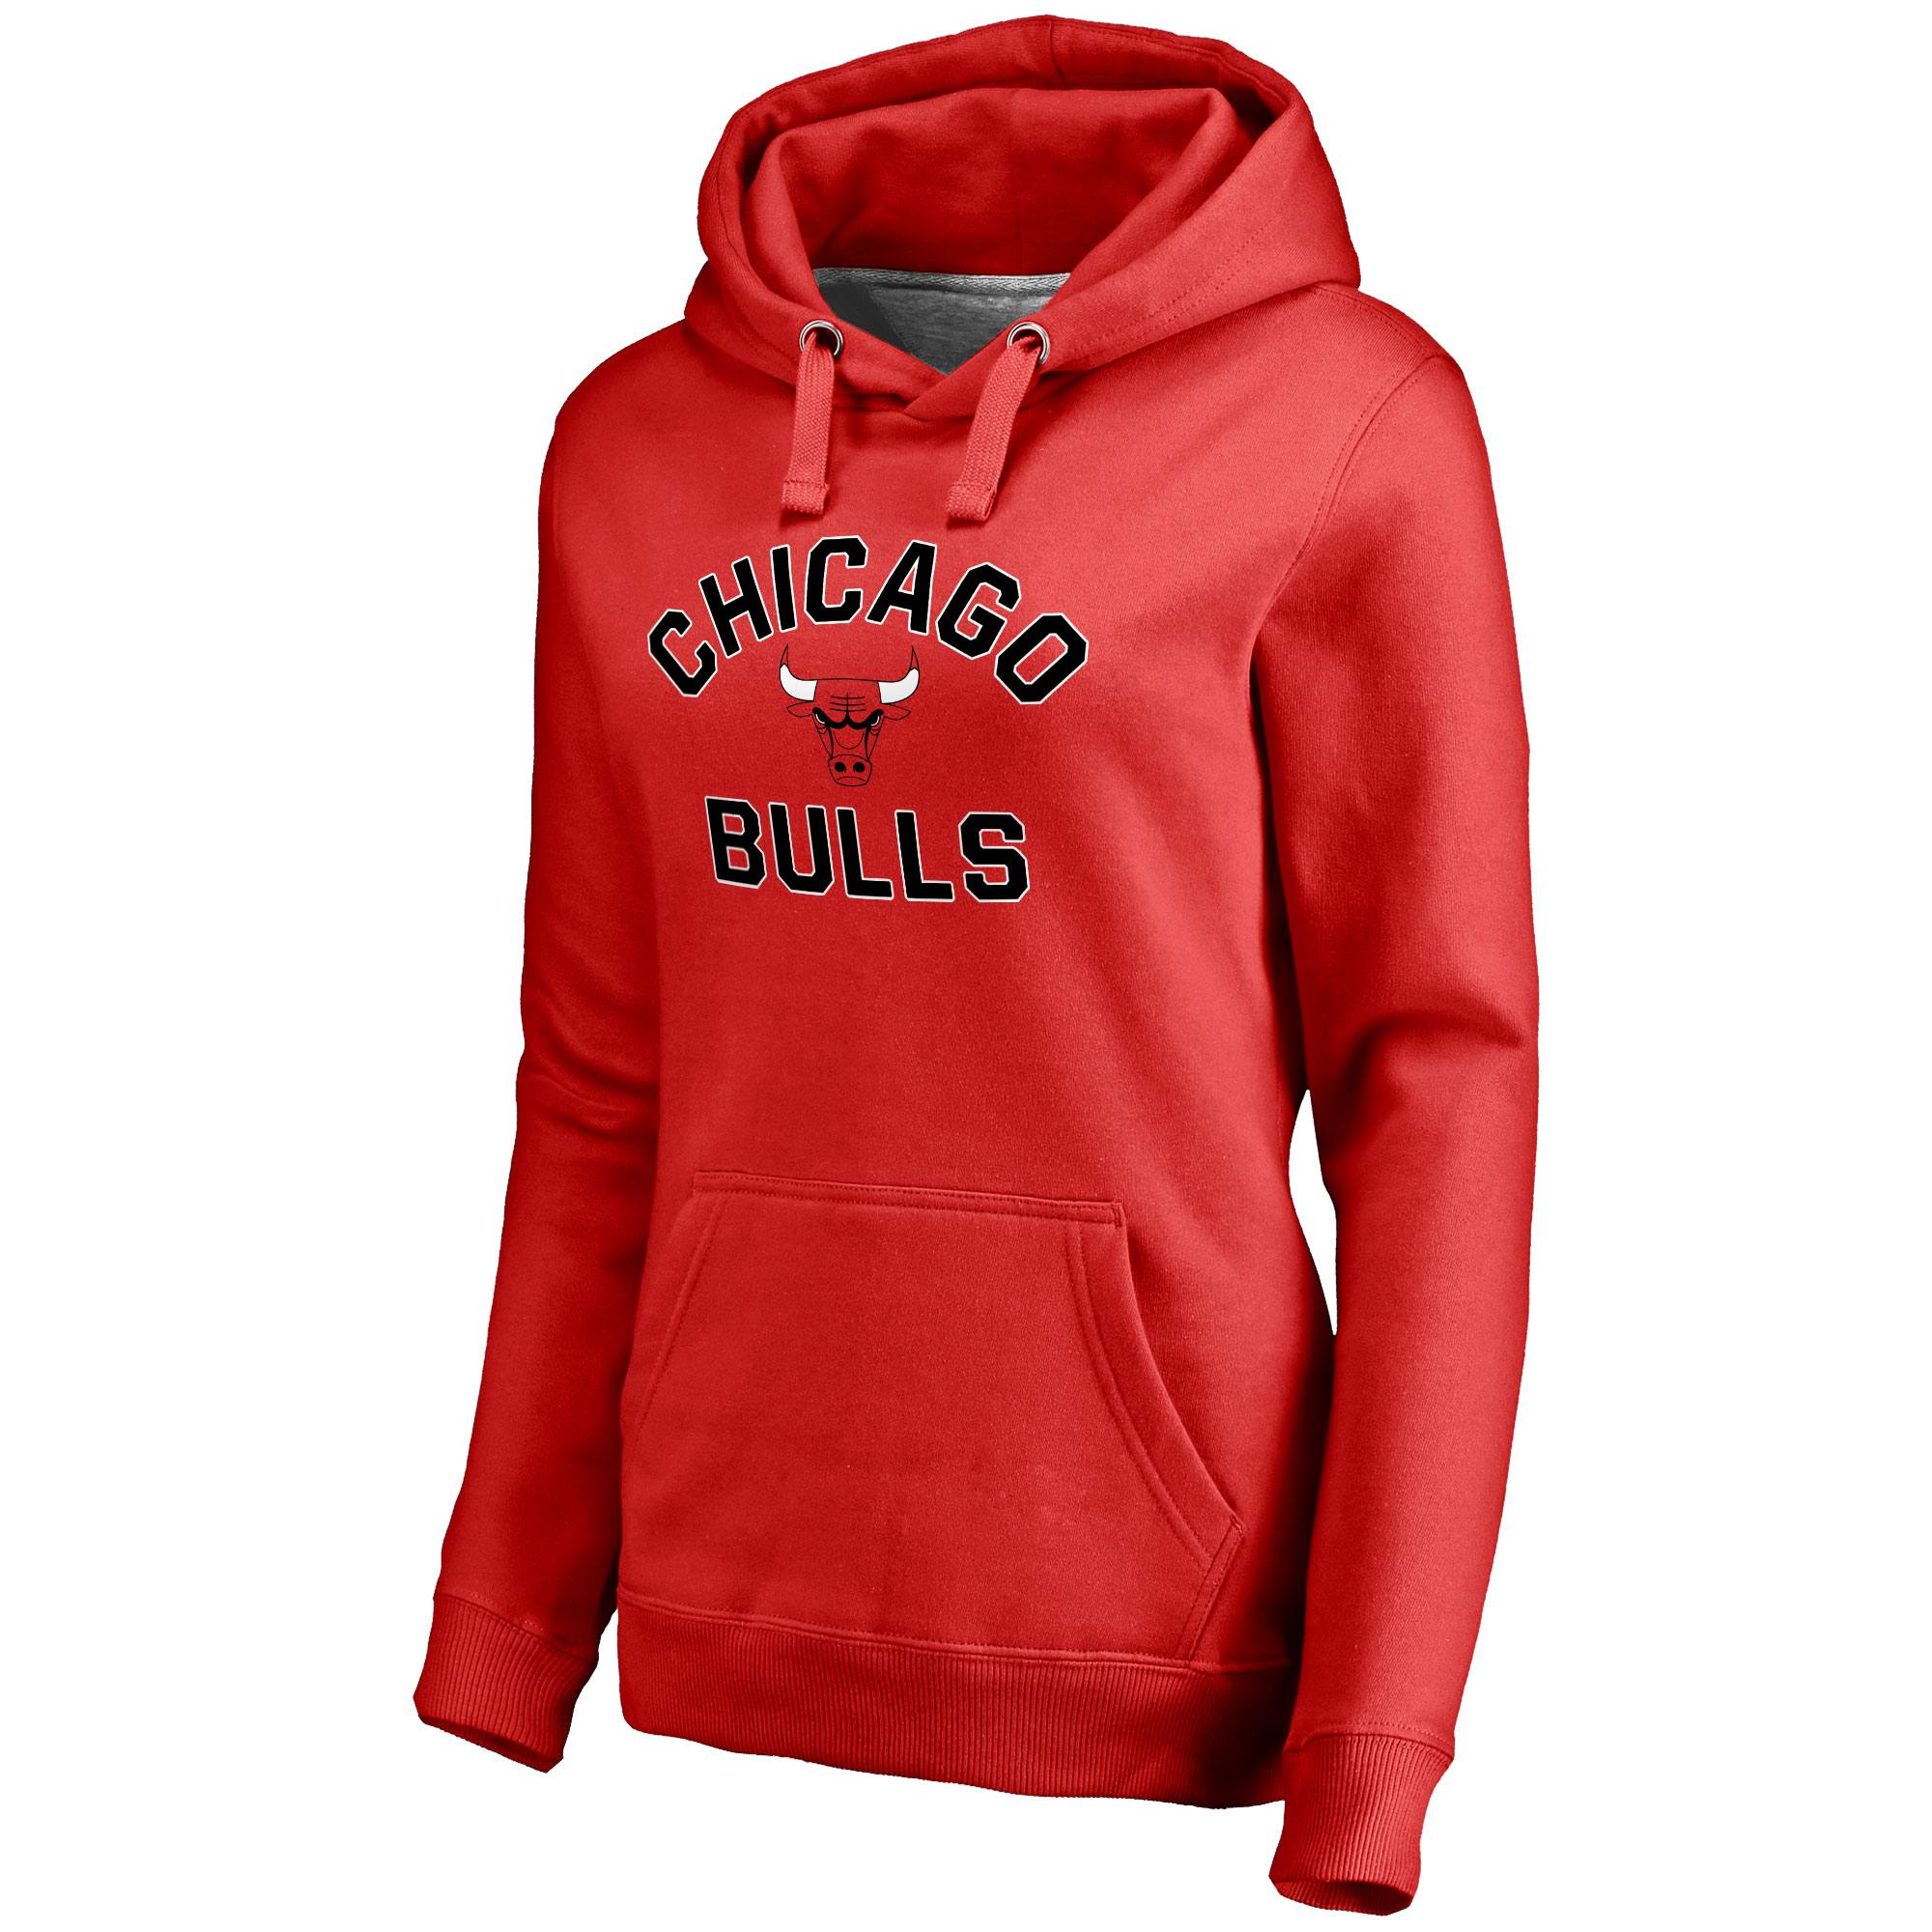 Chicago Bulls Women's Overtime Pullover Hoodie - Red